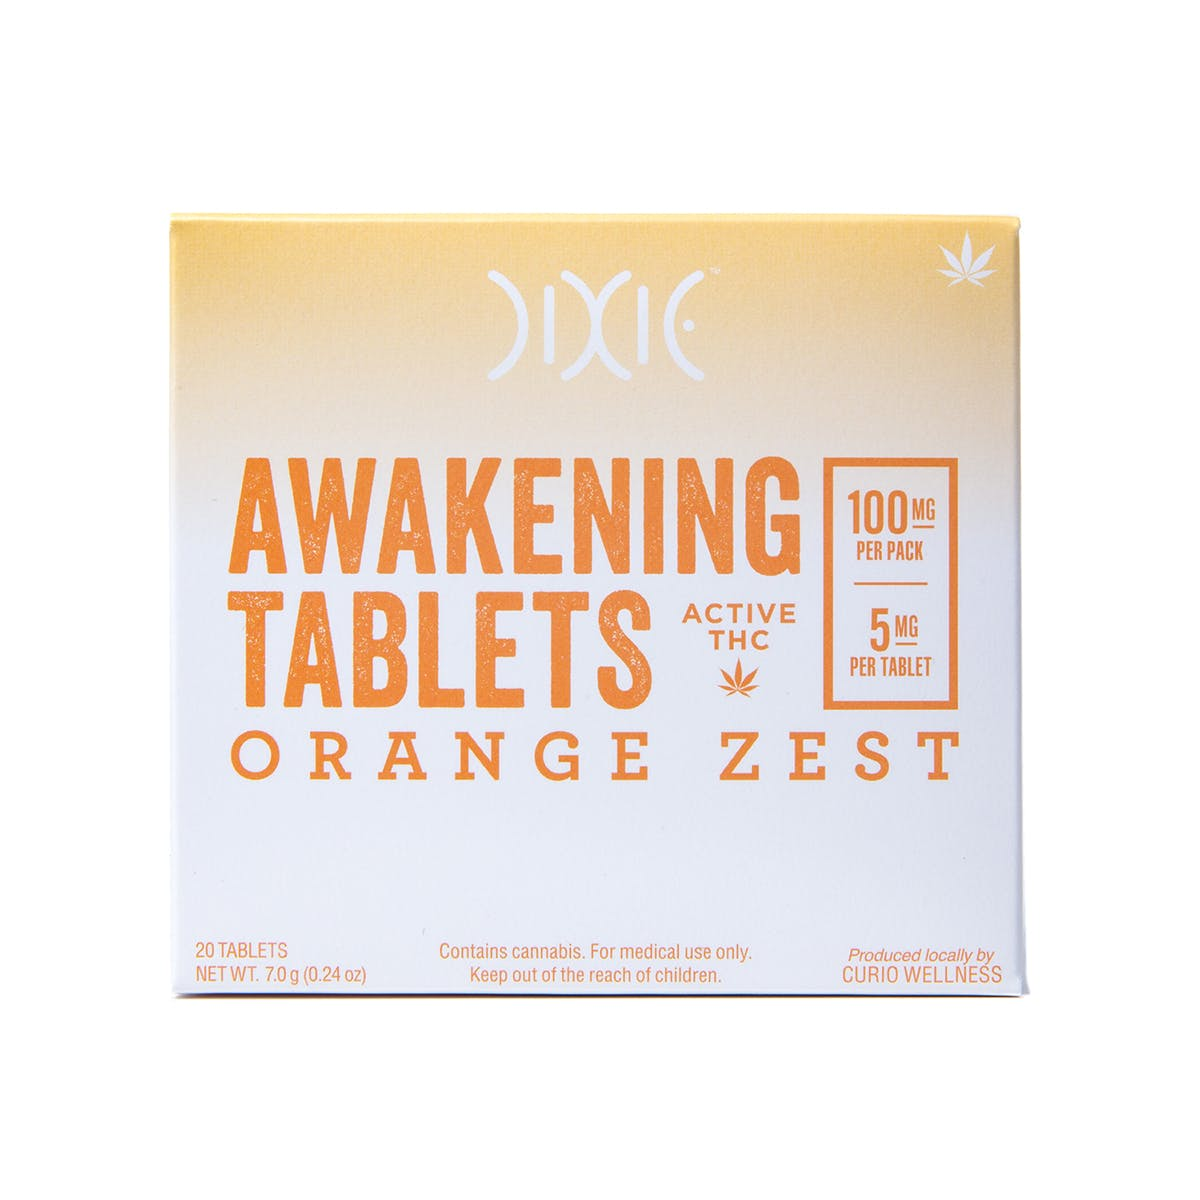 marijuana-dispensaries-curio-wellness-in-timonium-awakening-tablets-orange-zest-100mg